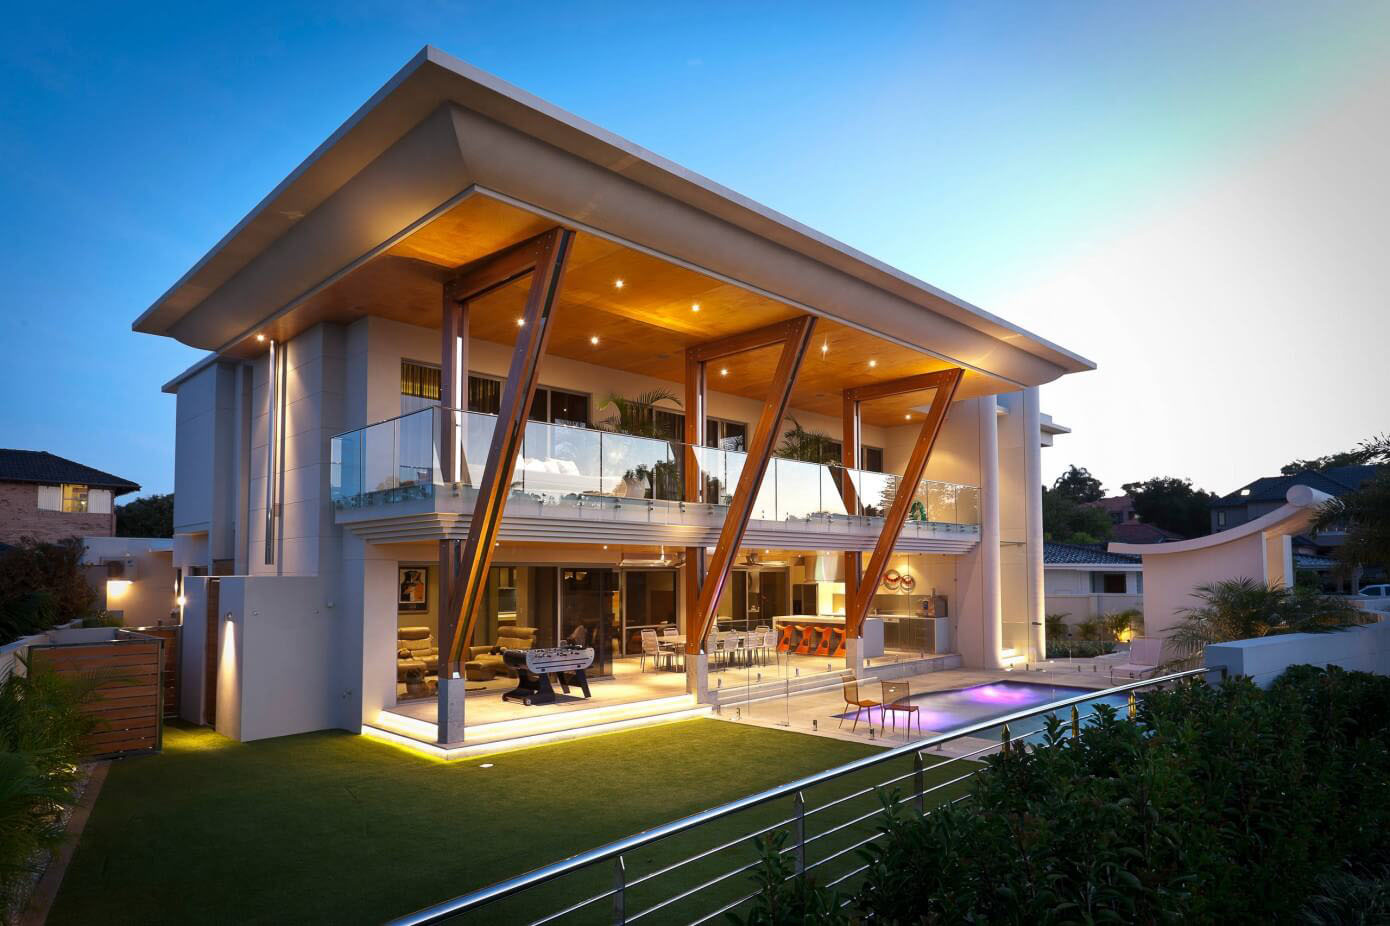 Ultra modern home in perth with large roof idesignarch for Big modern house designs